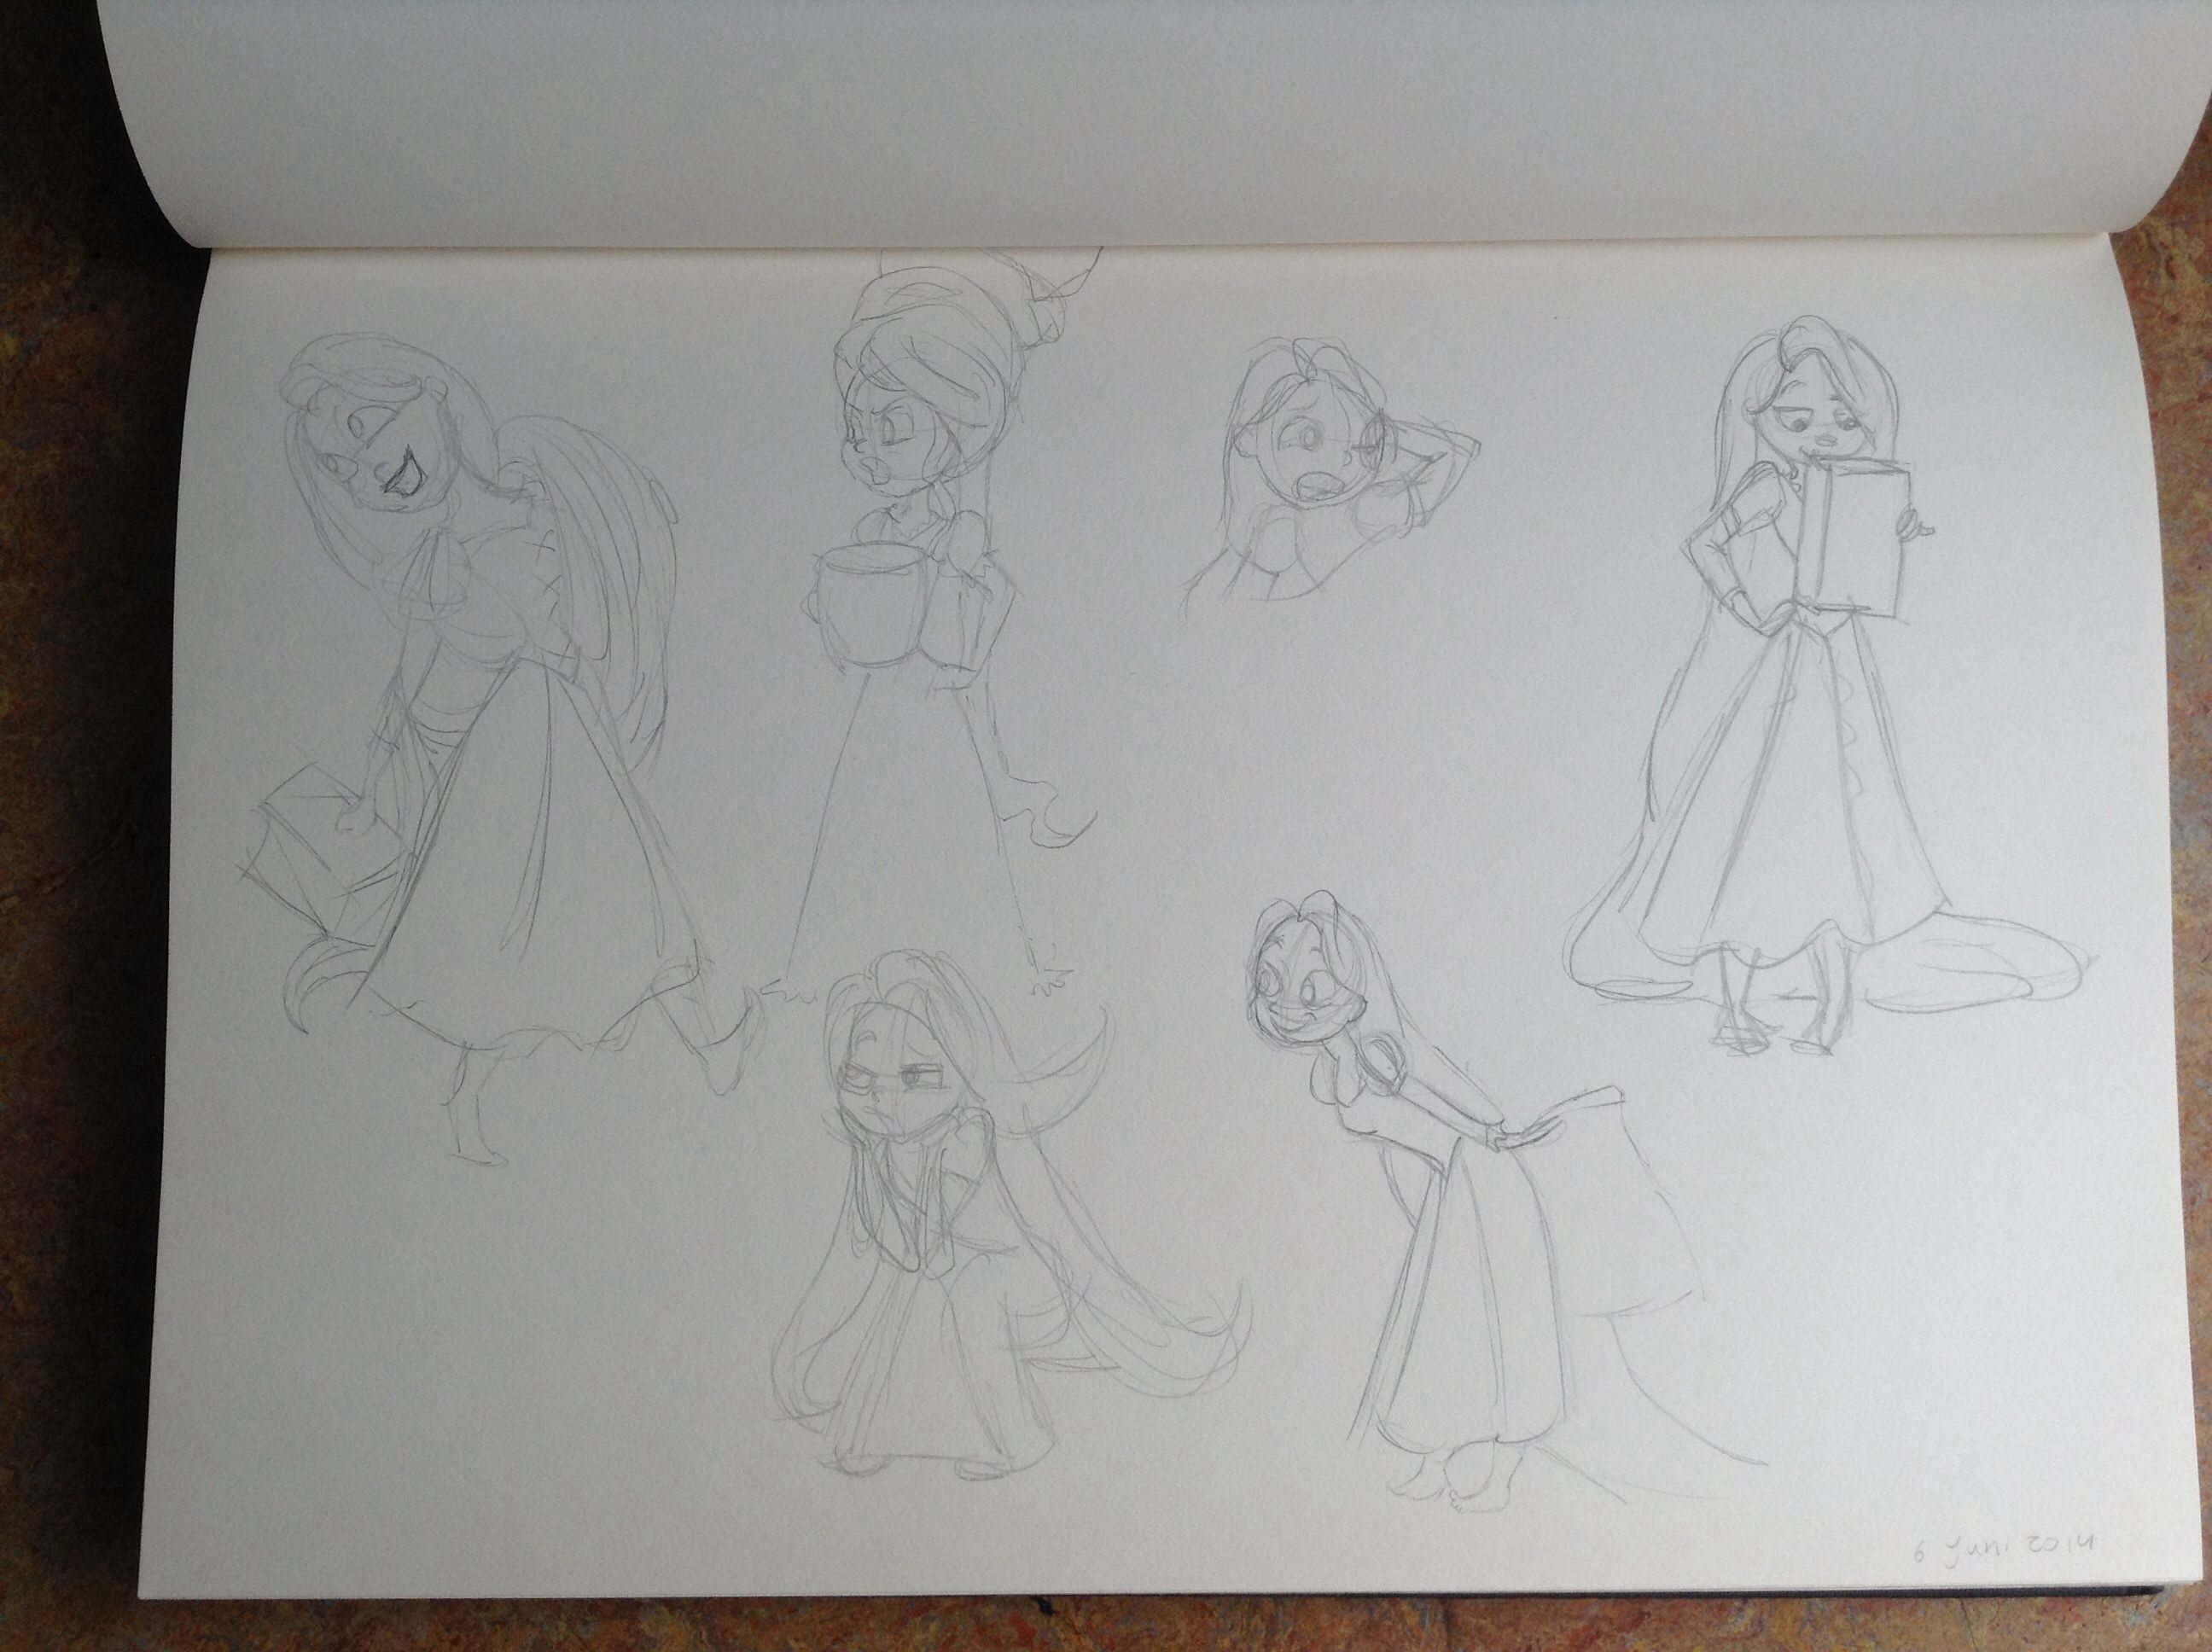 Very quick practicing sketches of Rapunzel. (Used Drawing's from Amy Mebberson as refrence) by Yenthe J.